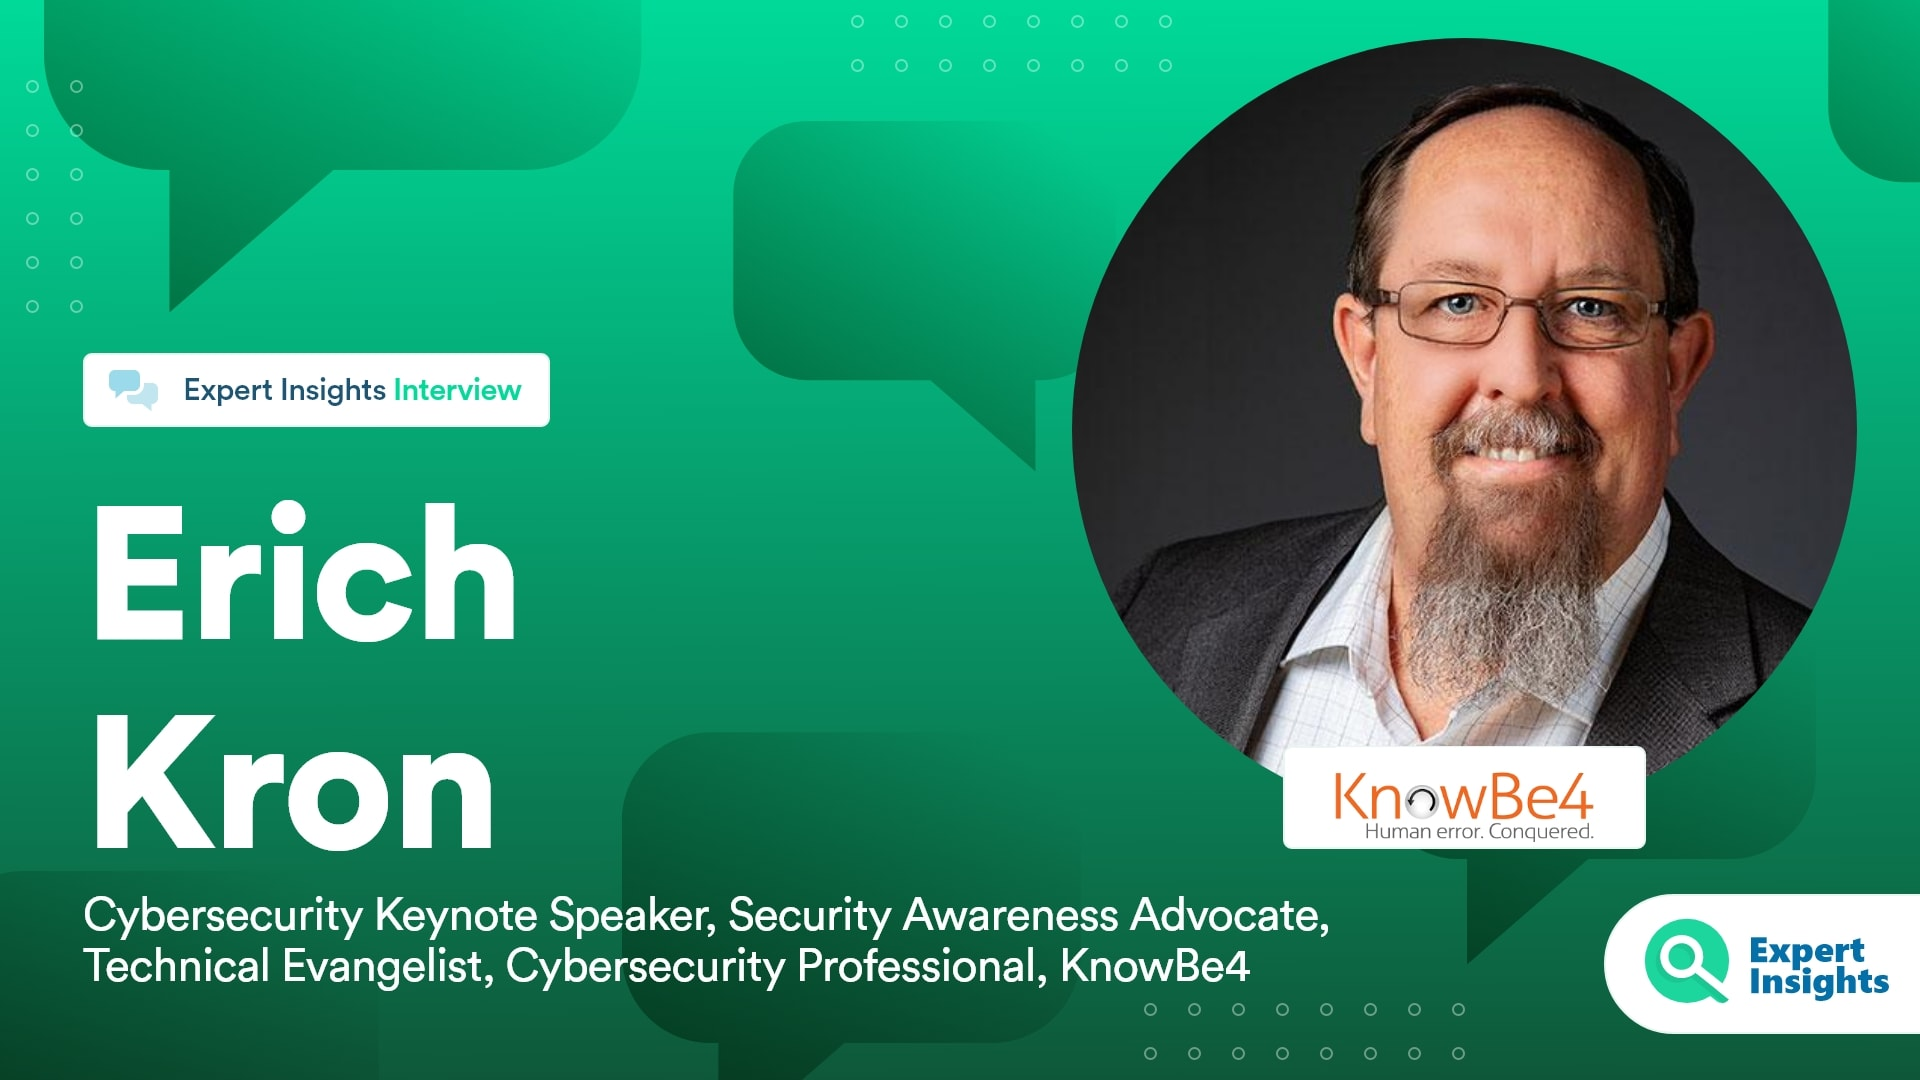 Expert Insights Interview With Erich Kron of KnowBe4